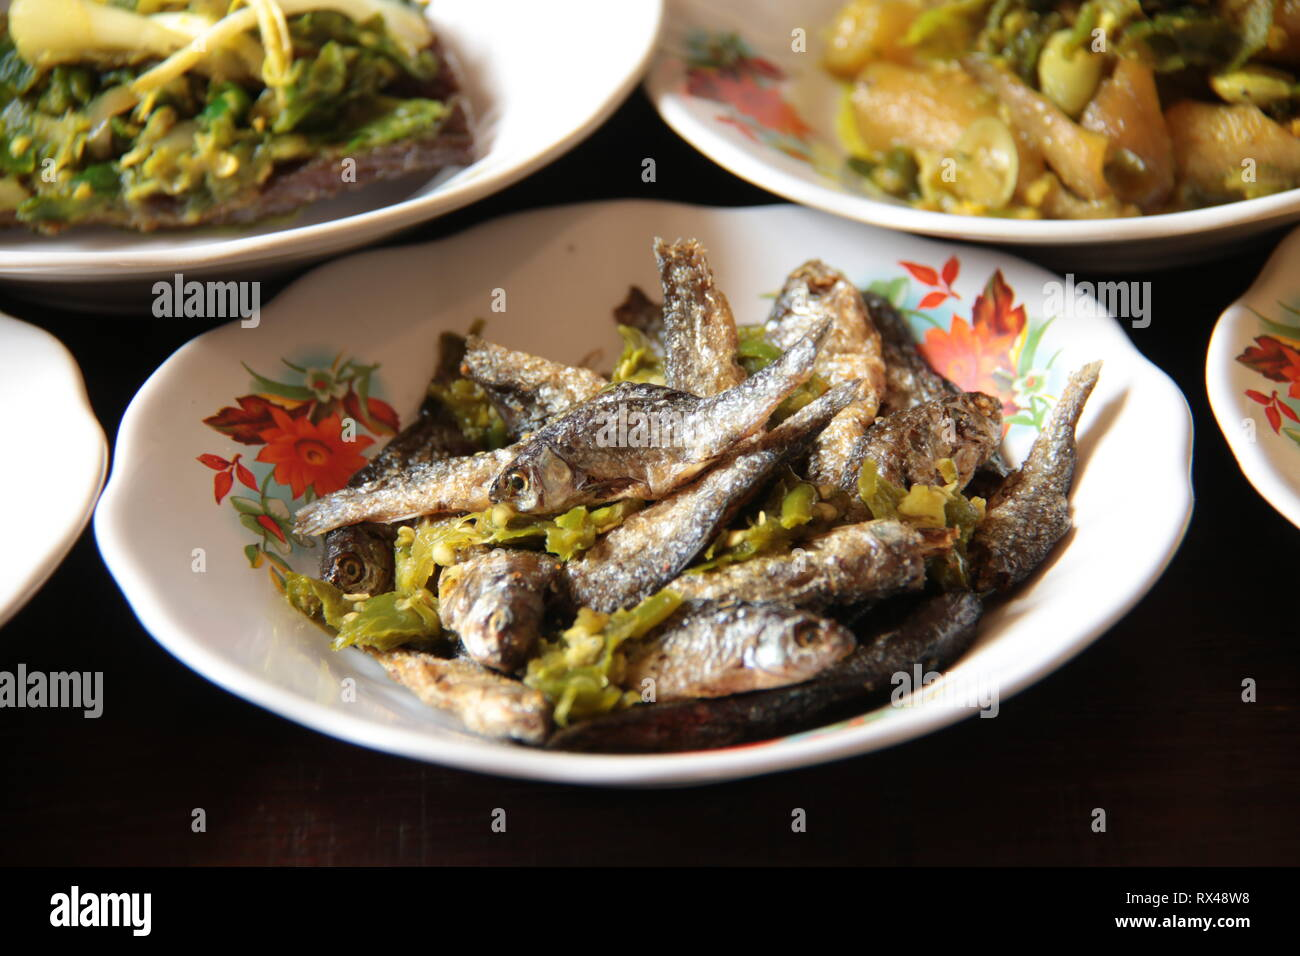 Ikan Bilis. Crispy anchovies with green chili pepper from Padang, West Sumatra - Stock Image